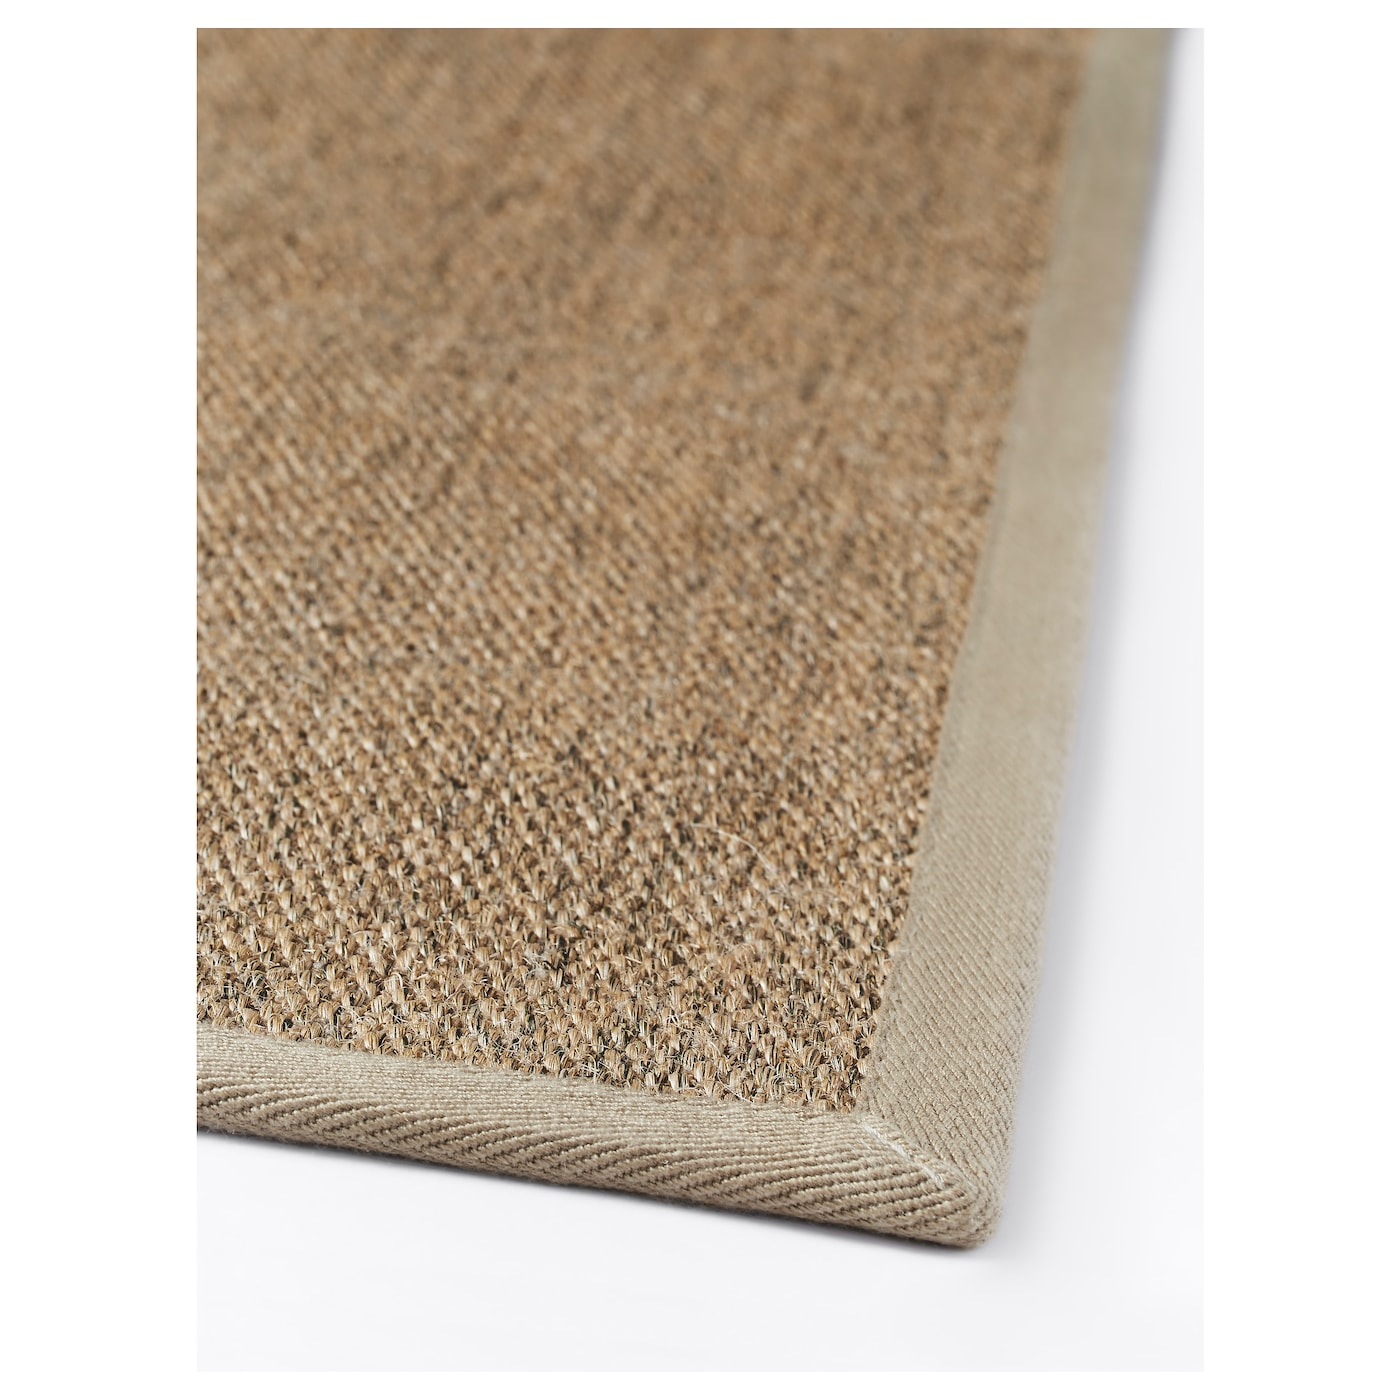 Osted rug flatwoven natural 80x140 cm ikea - Alfombra de coco ikea ...